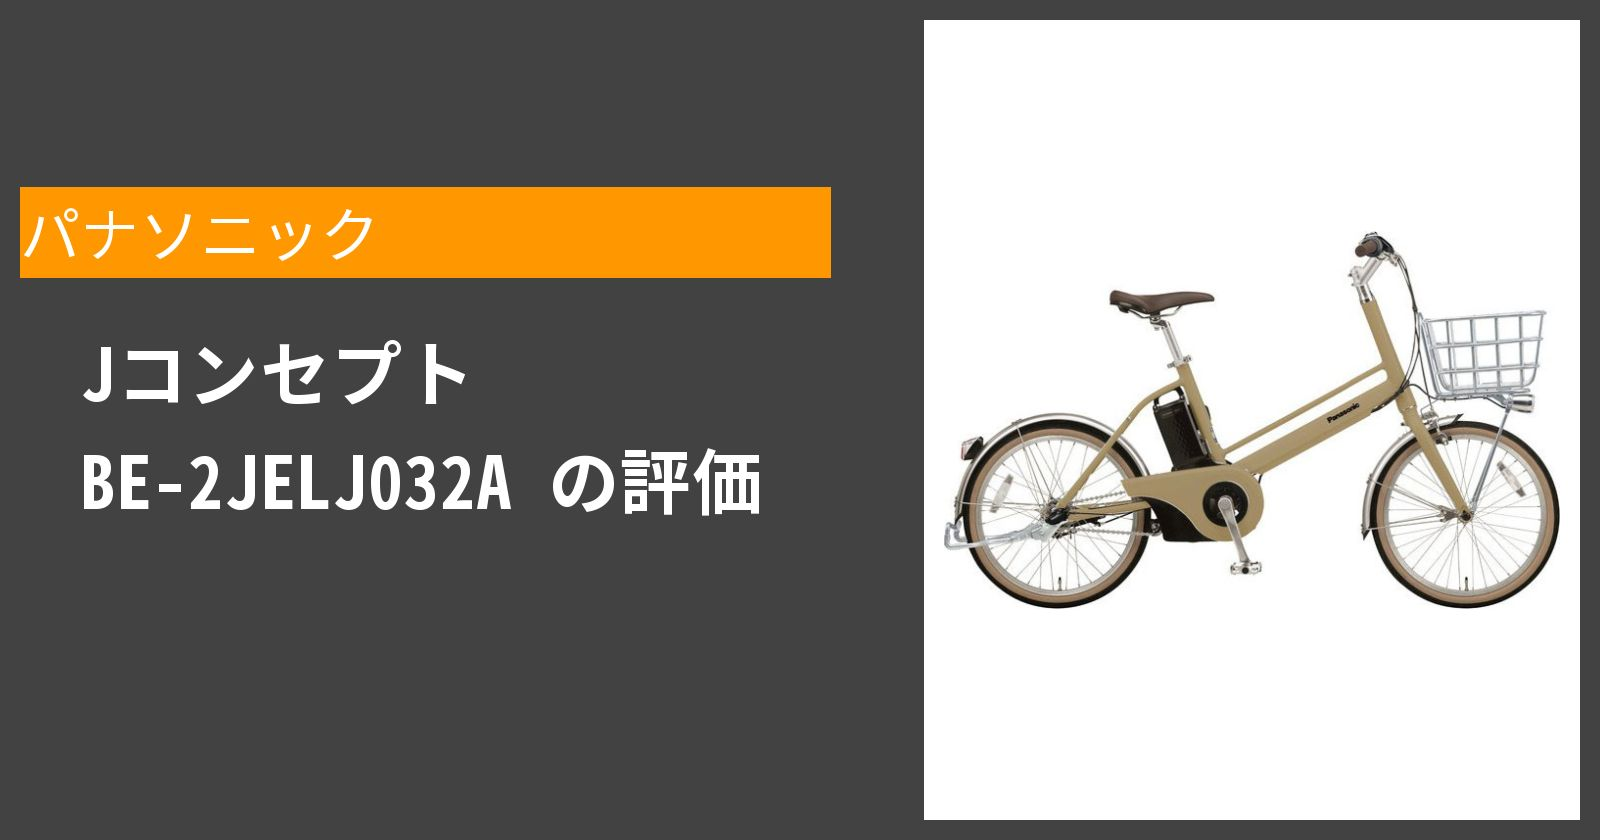 Jコンセプト BE-2JELJ032Aを徹底評価